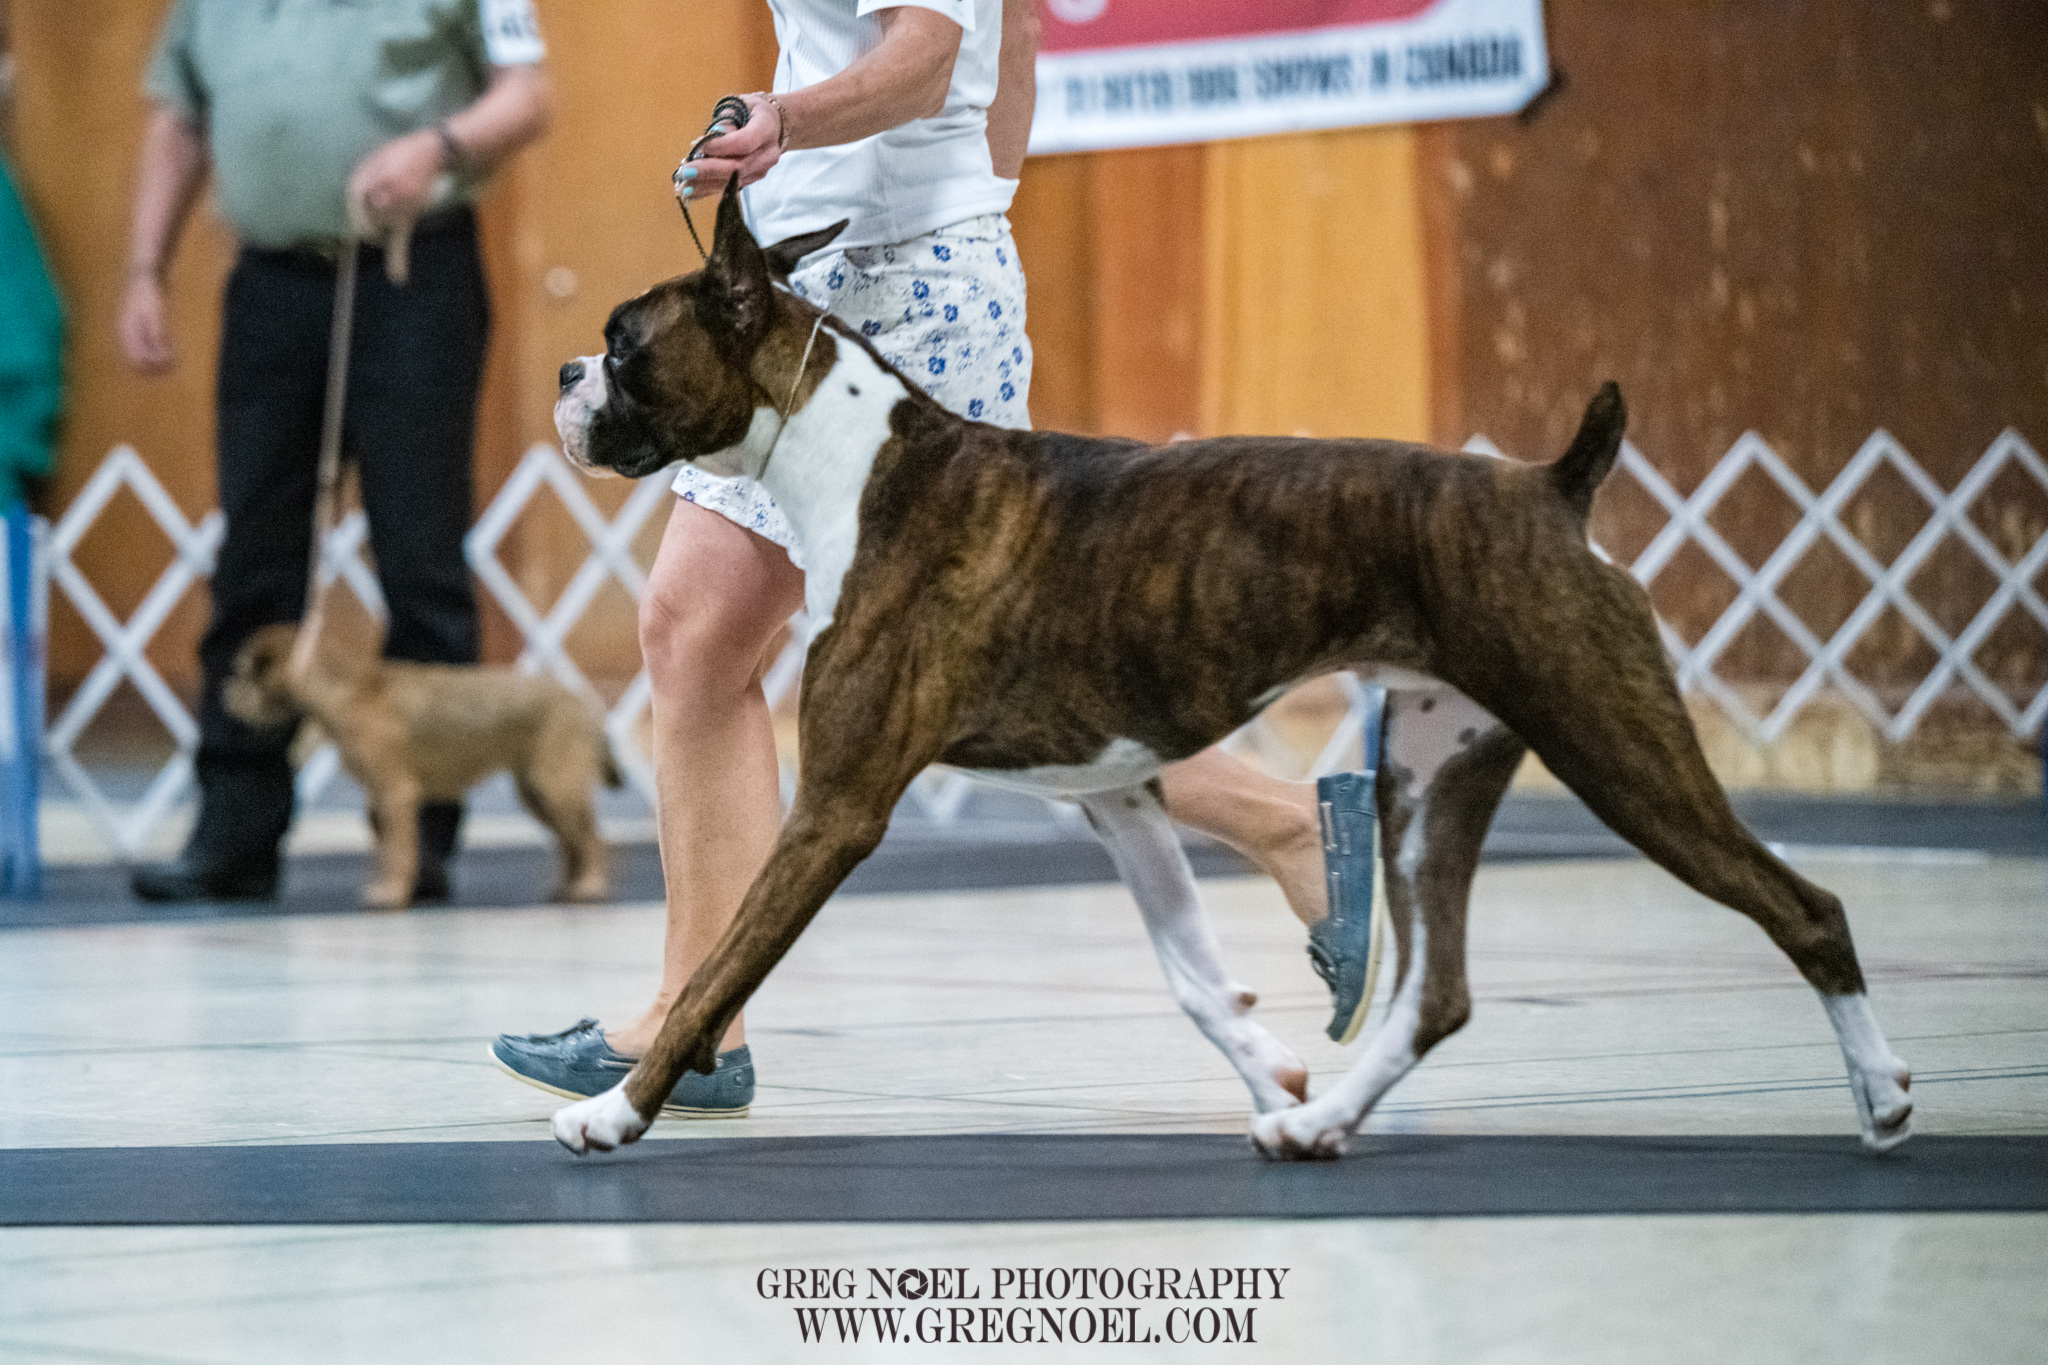 Newfoundland All Breed Kennel Club Dog ShowJuly 2019 Candids and Ring Photos - Personal use digital downloads$10 each, 3 for $25Commercial Licence for breeders/businesses/advertising additional $60 per imagePrints also available